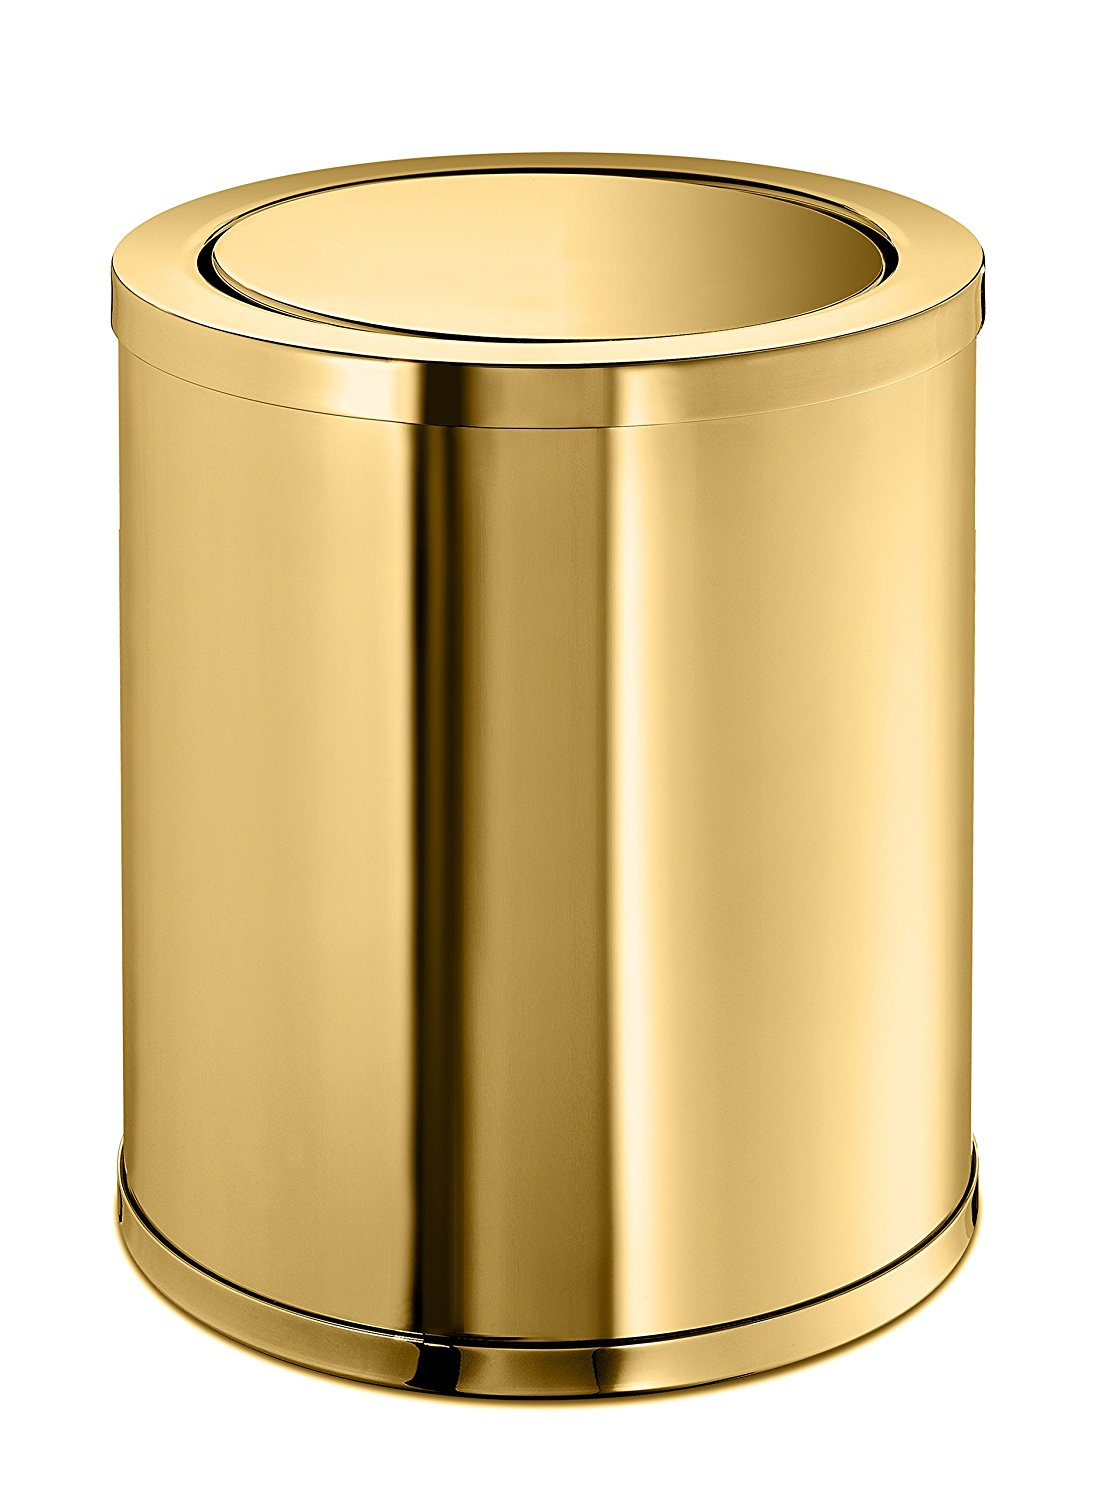 Get Quotations W Luxury Lisa Round Wastebasket Trash Can For Bathroom Kitchen Swing Lid